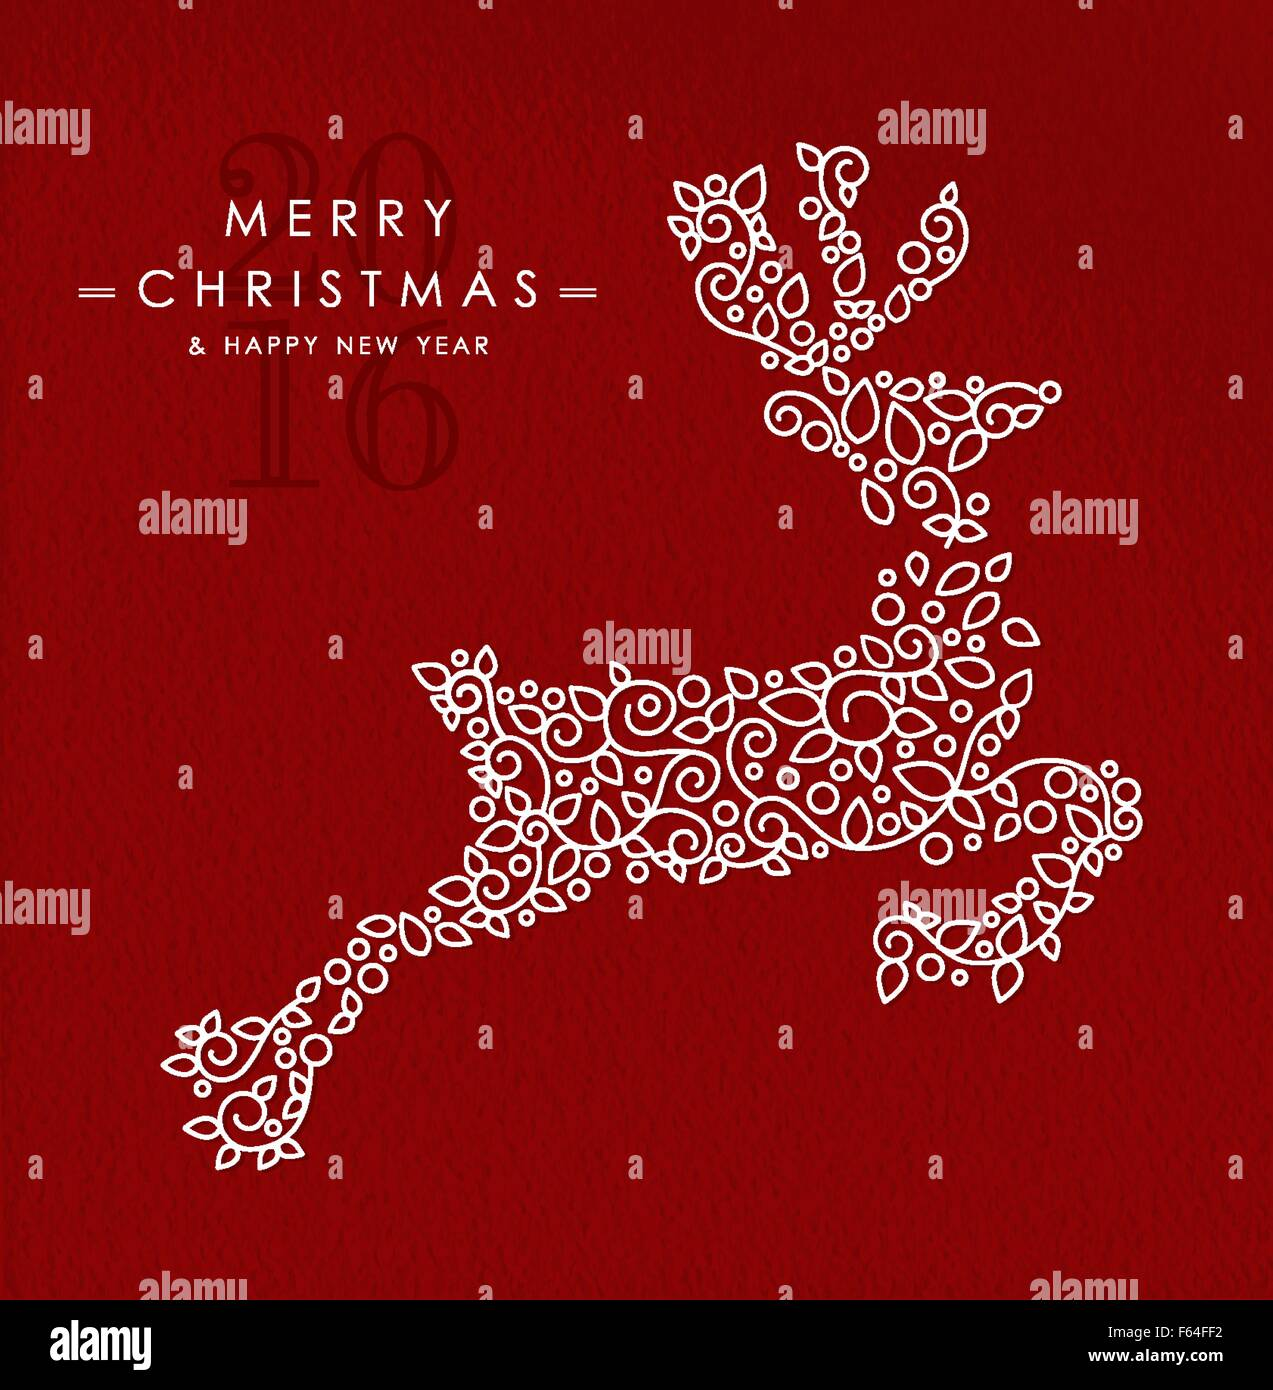 Merry Christmas Happy New Year 2016 Greeting Card